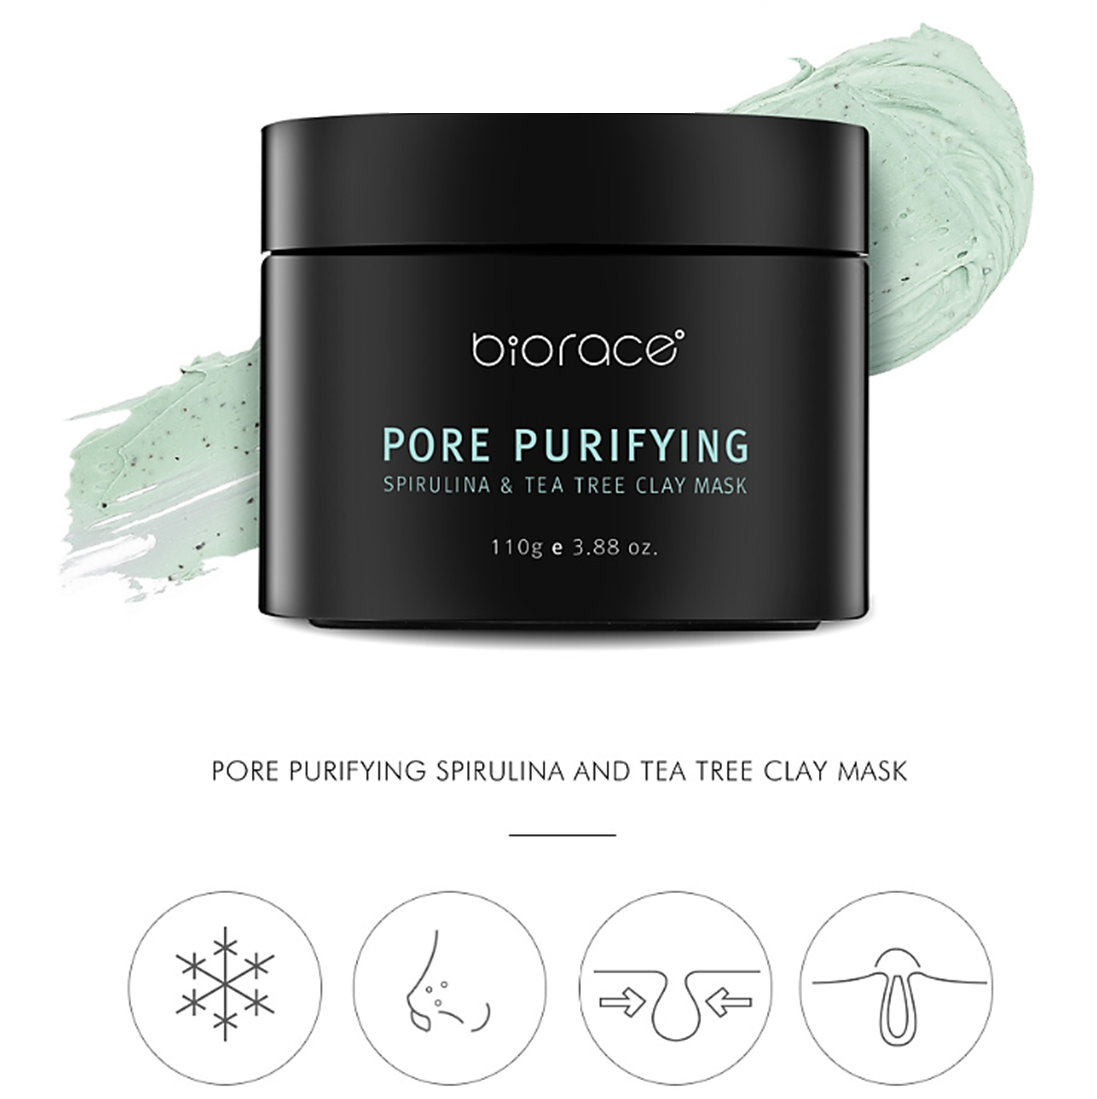 Pore-Purifying Spirulina and Tea Tree Clay Mask